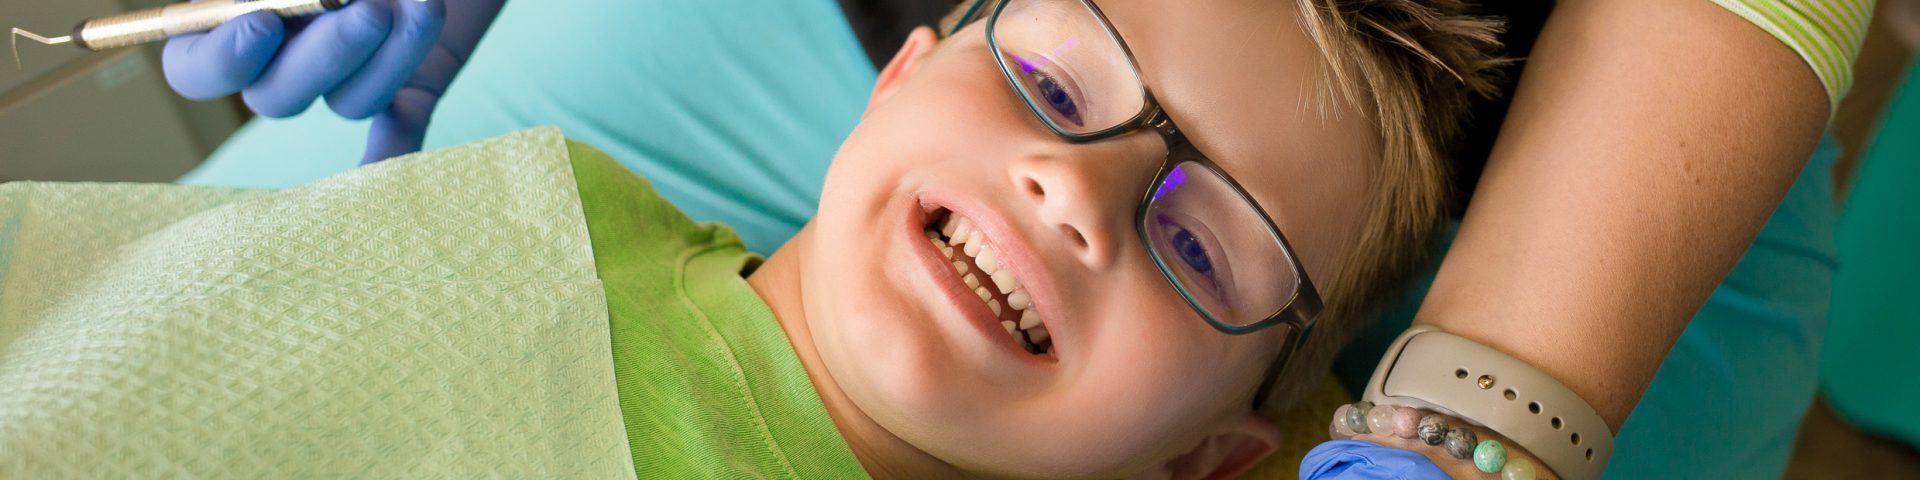 Dentist for children in Blaine, MN